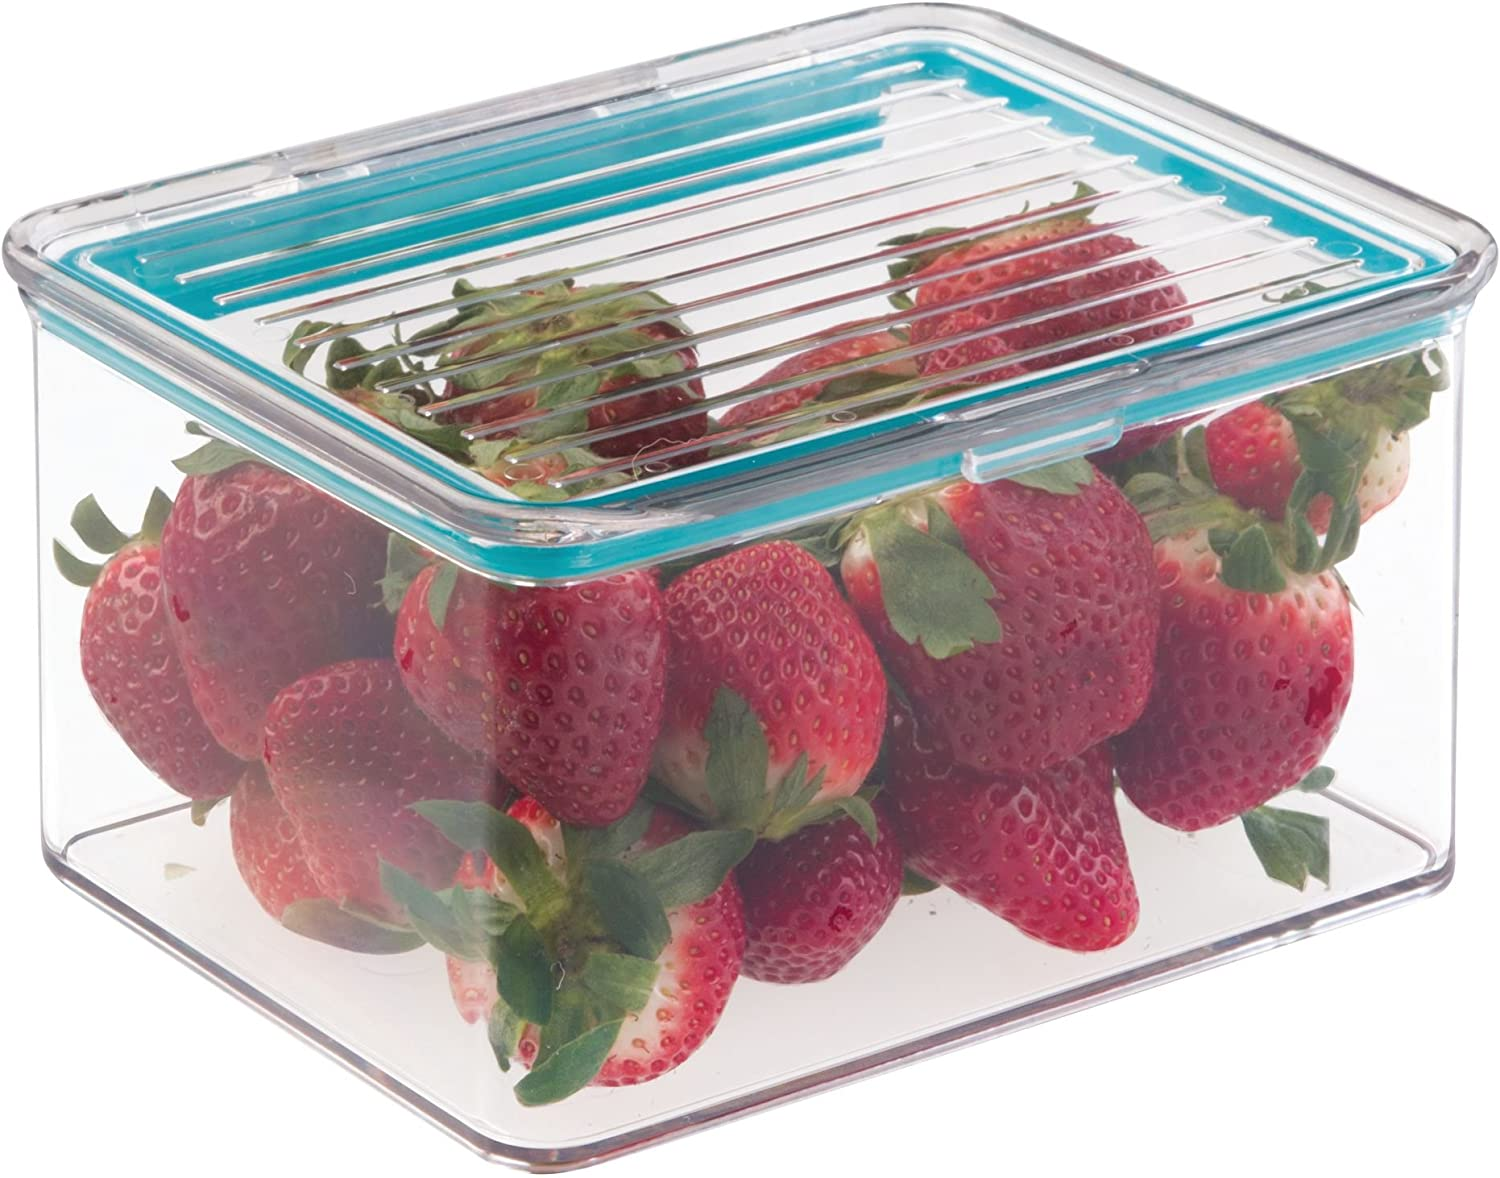 "iDesign Plastic BPA-Free Pantry Food Storage Organizer Bin with Air-Tight Hinged Lid, 1.5 Quart Container for Kitchen, Fridge, Freezer, Cabinet, 5.5"" x 6.6"" x 3.7"" - Clear"